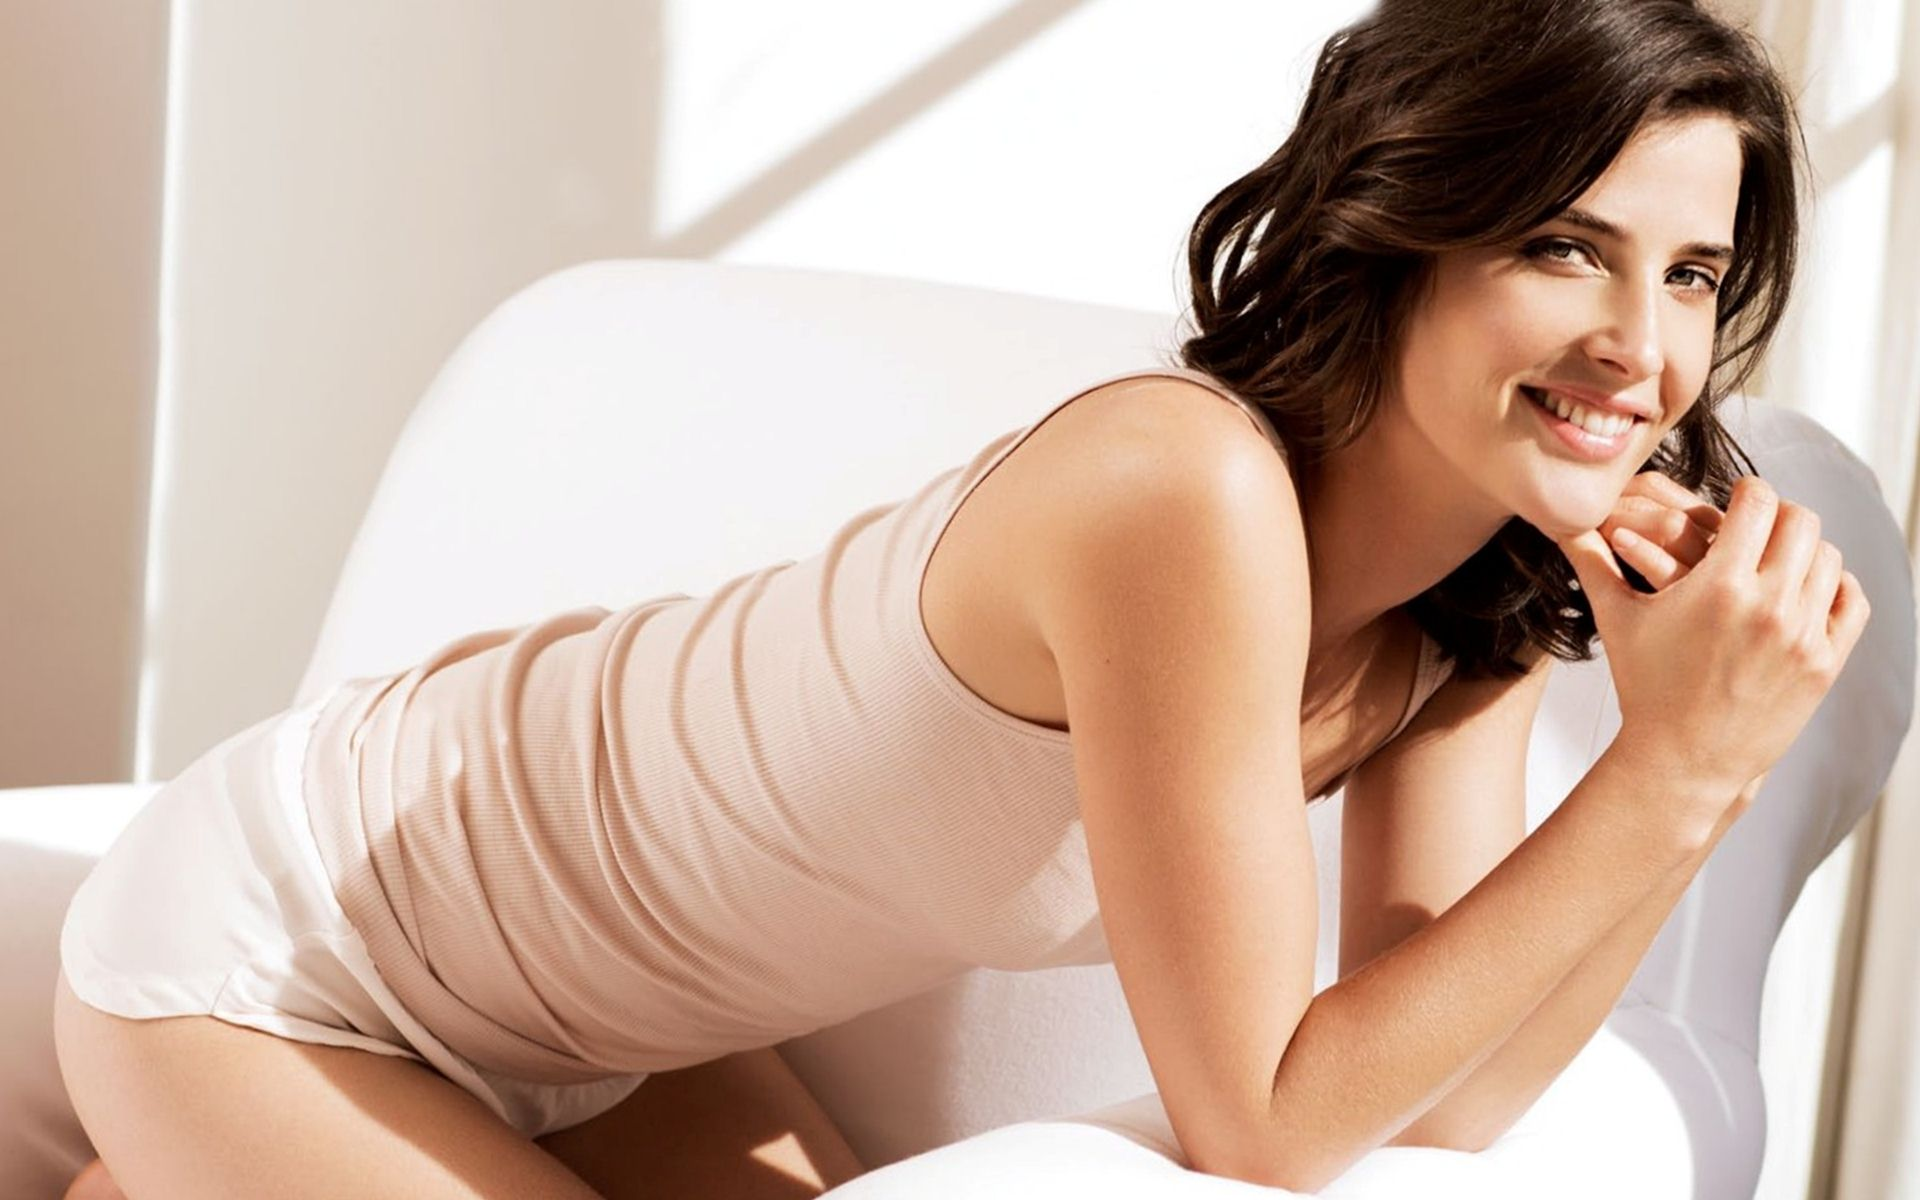 Cobie Smulders Hot & Sexy Pics, Near-Nude Photos